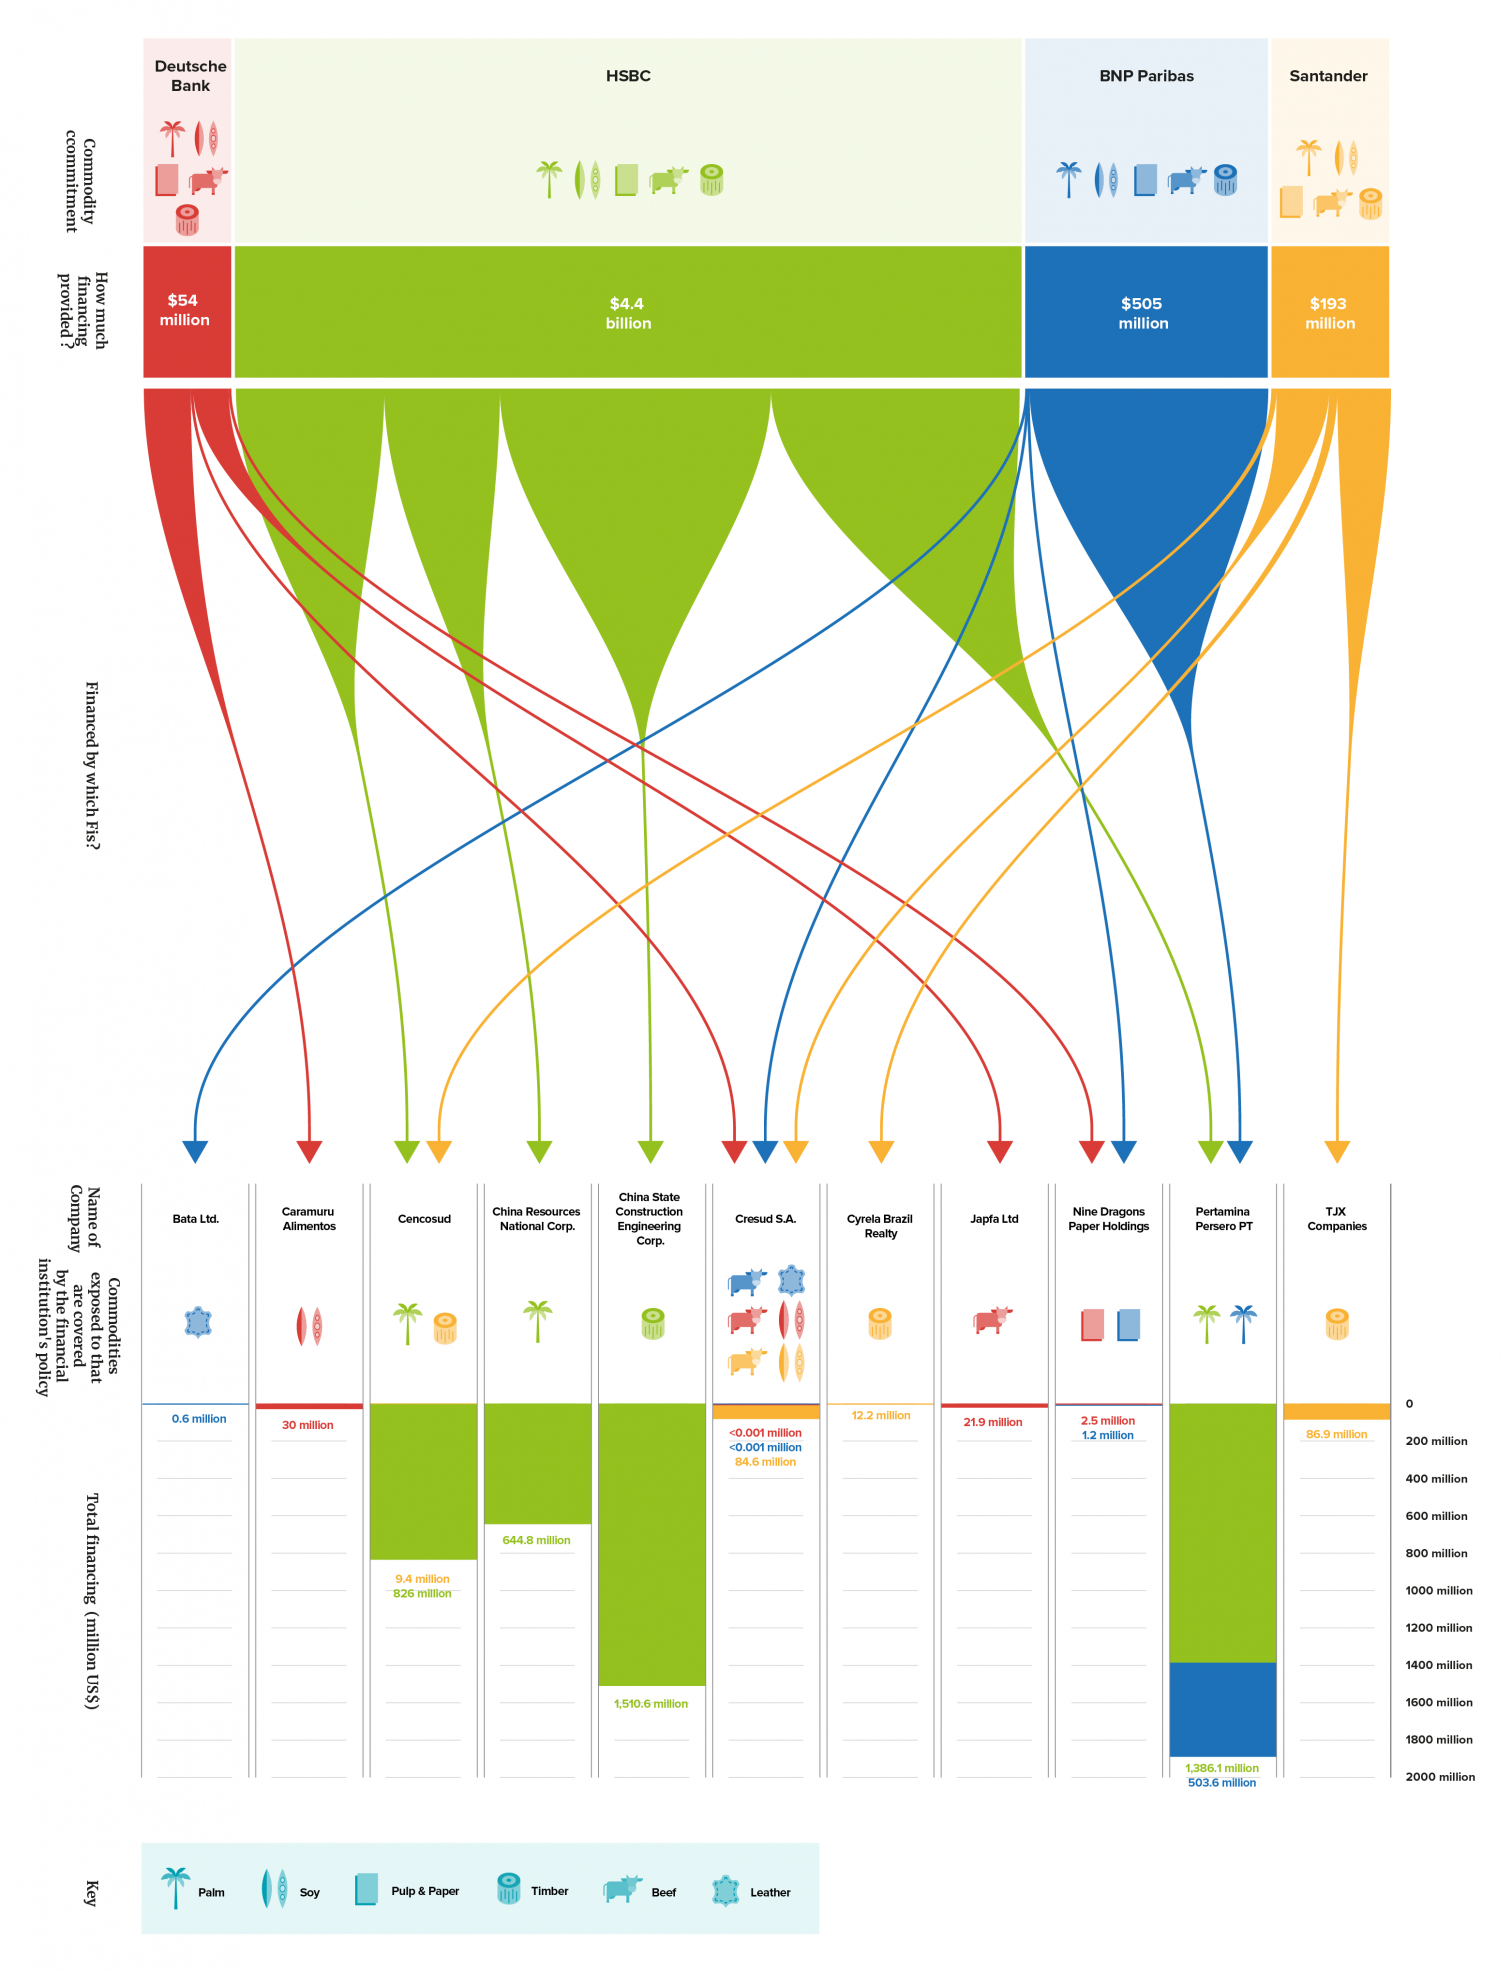 Infographic showing the funding flow of four financial institutions, Deutsche Bank, HSBC, BNP Paribas and Santander, to deforestation-risk companies